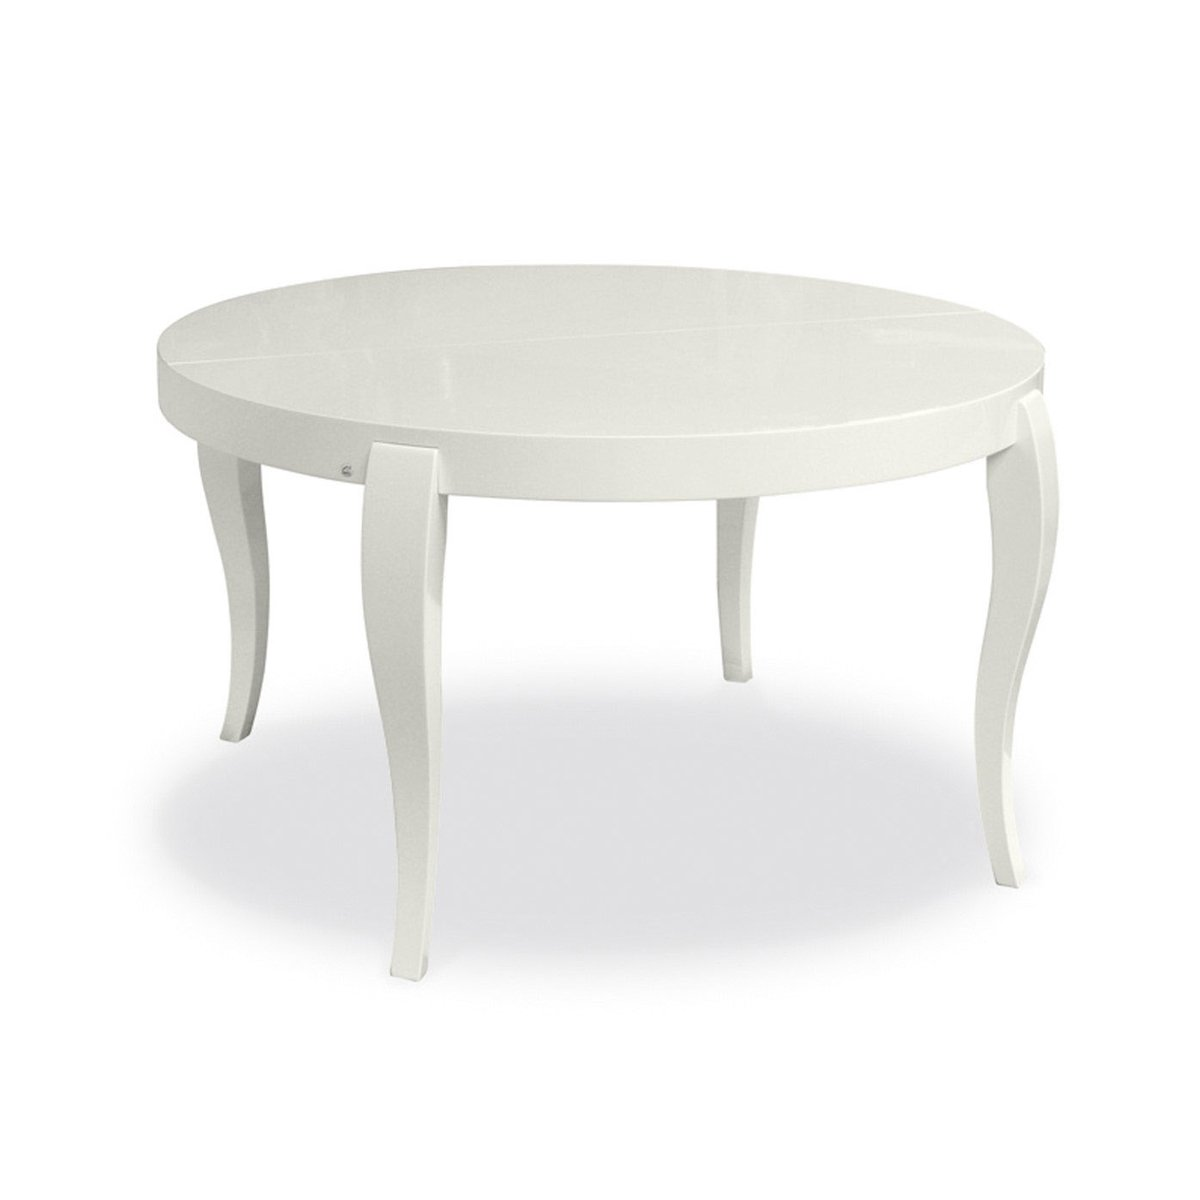 table de repas extensible ronde regency meubles et atmosph re On meuble table ronde extensible